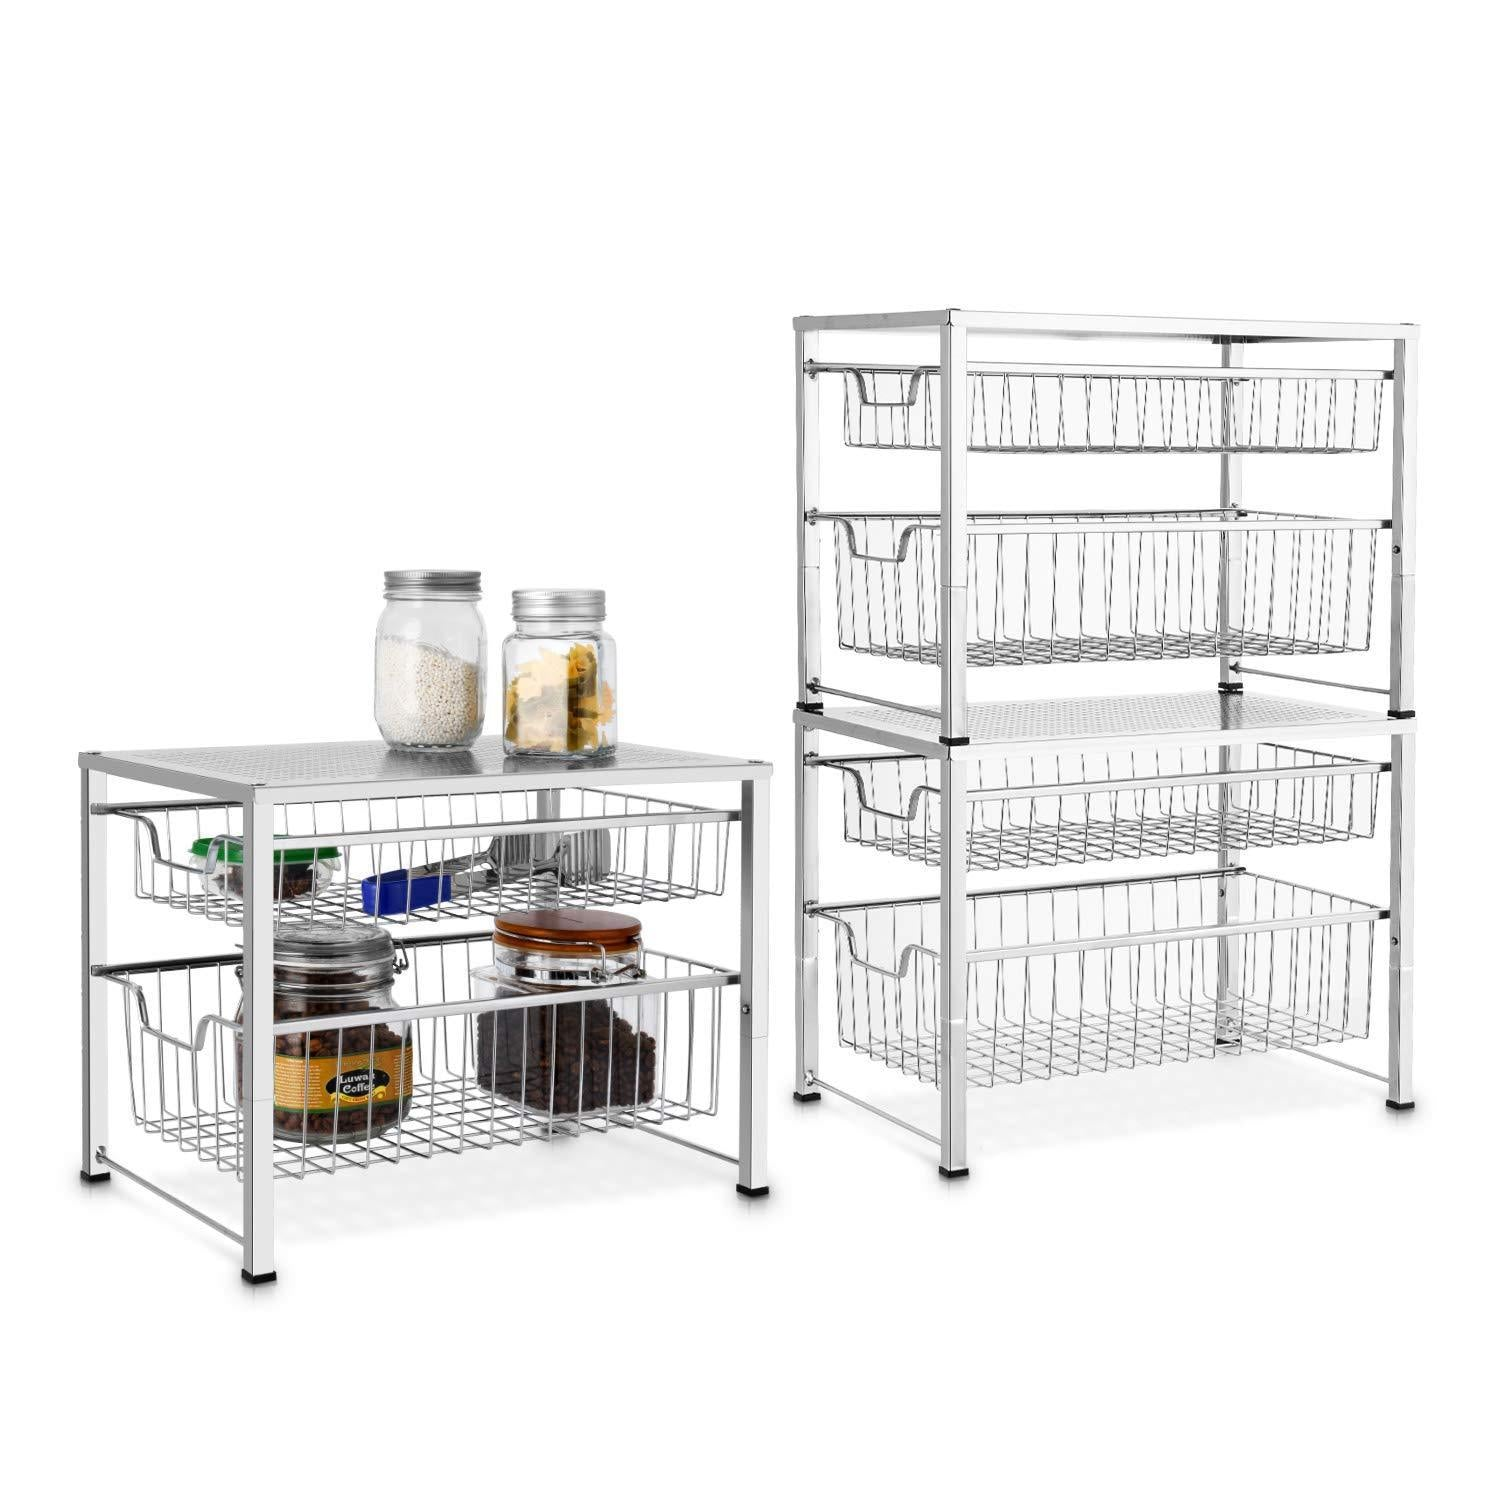 Online shopping bextsware under sink cabinet organizer with 2 tier wire grid sliding drawer multi function stackable mesh storage organizer for kitchen counter desktop bathroomchrome